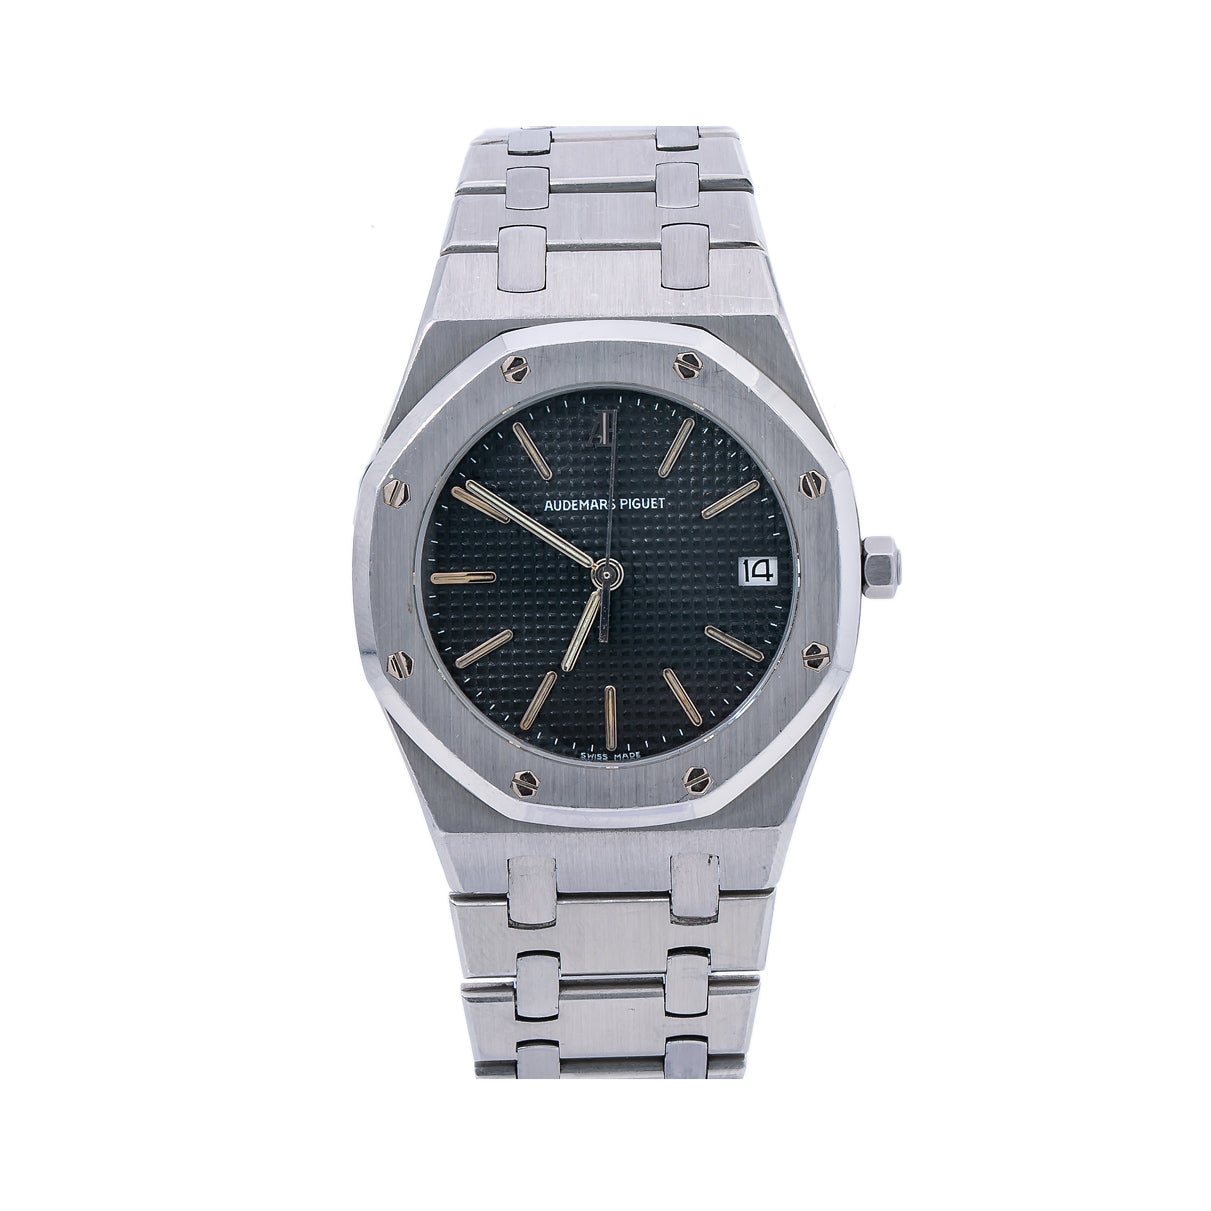 Audemars Piguet Royal Oak 56023ST 33MM Black Dial With Stainless Steel Bracelet